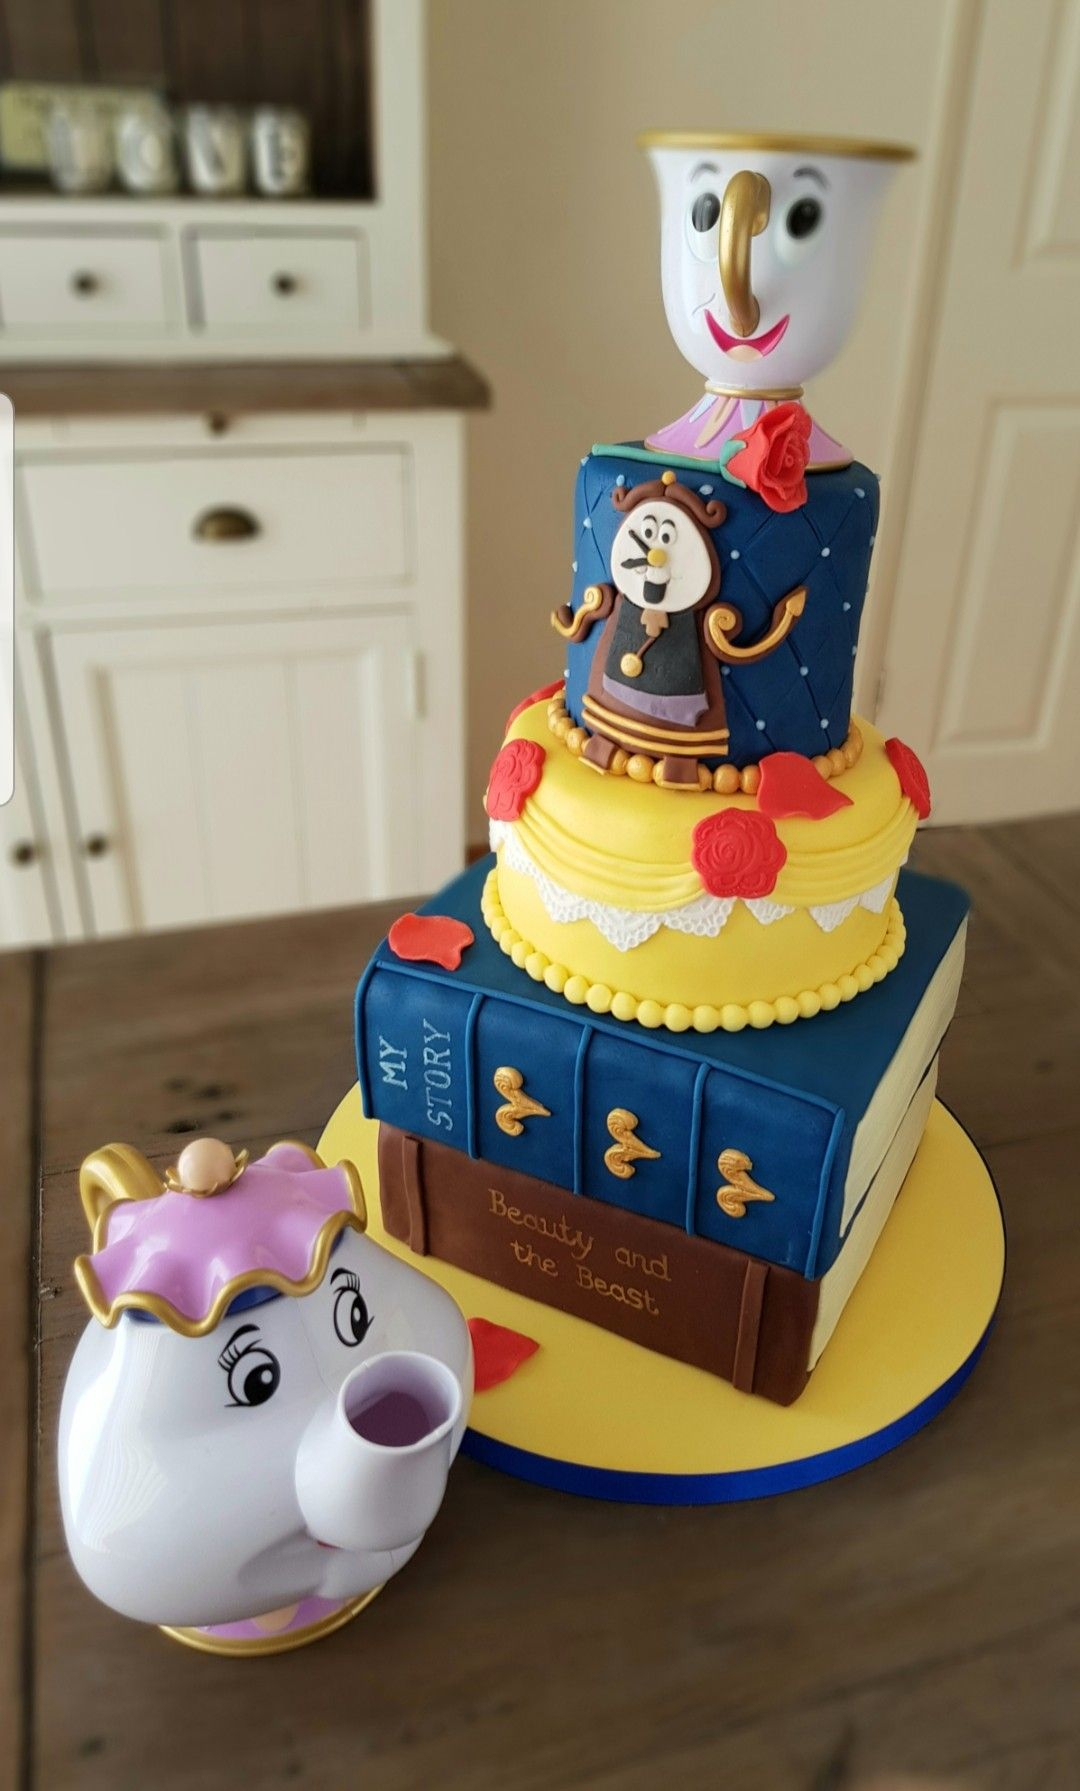 Beauty and the beast by kims cake gallery in leamington